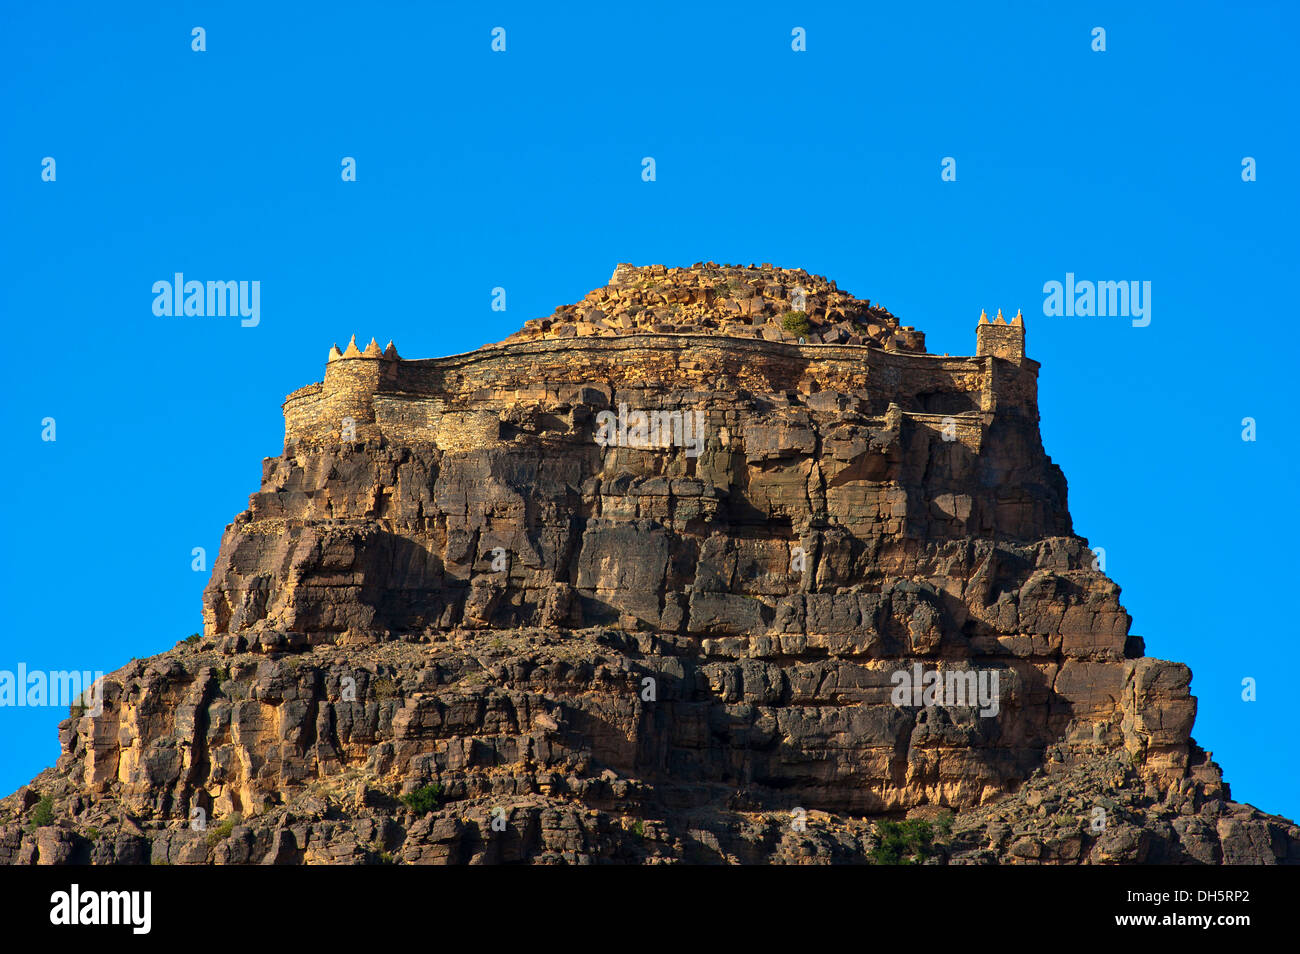 The impressive Agadir Id Aissa, fortified castle on a crag, Amtoudi, Anti-Atlas or Lesser Atlas mountain range, southern Morocco - Stock Image